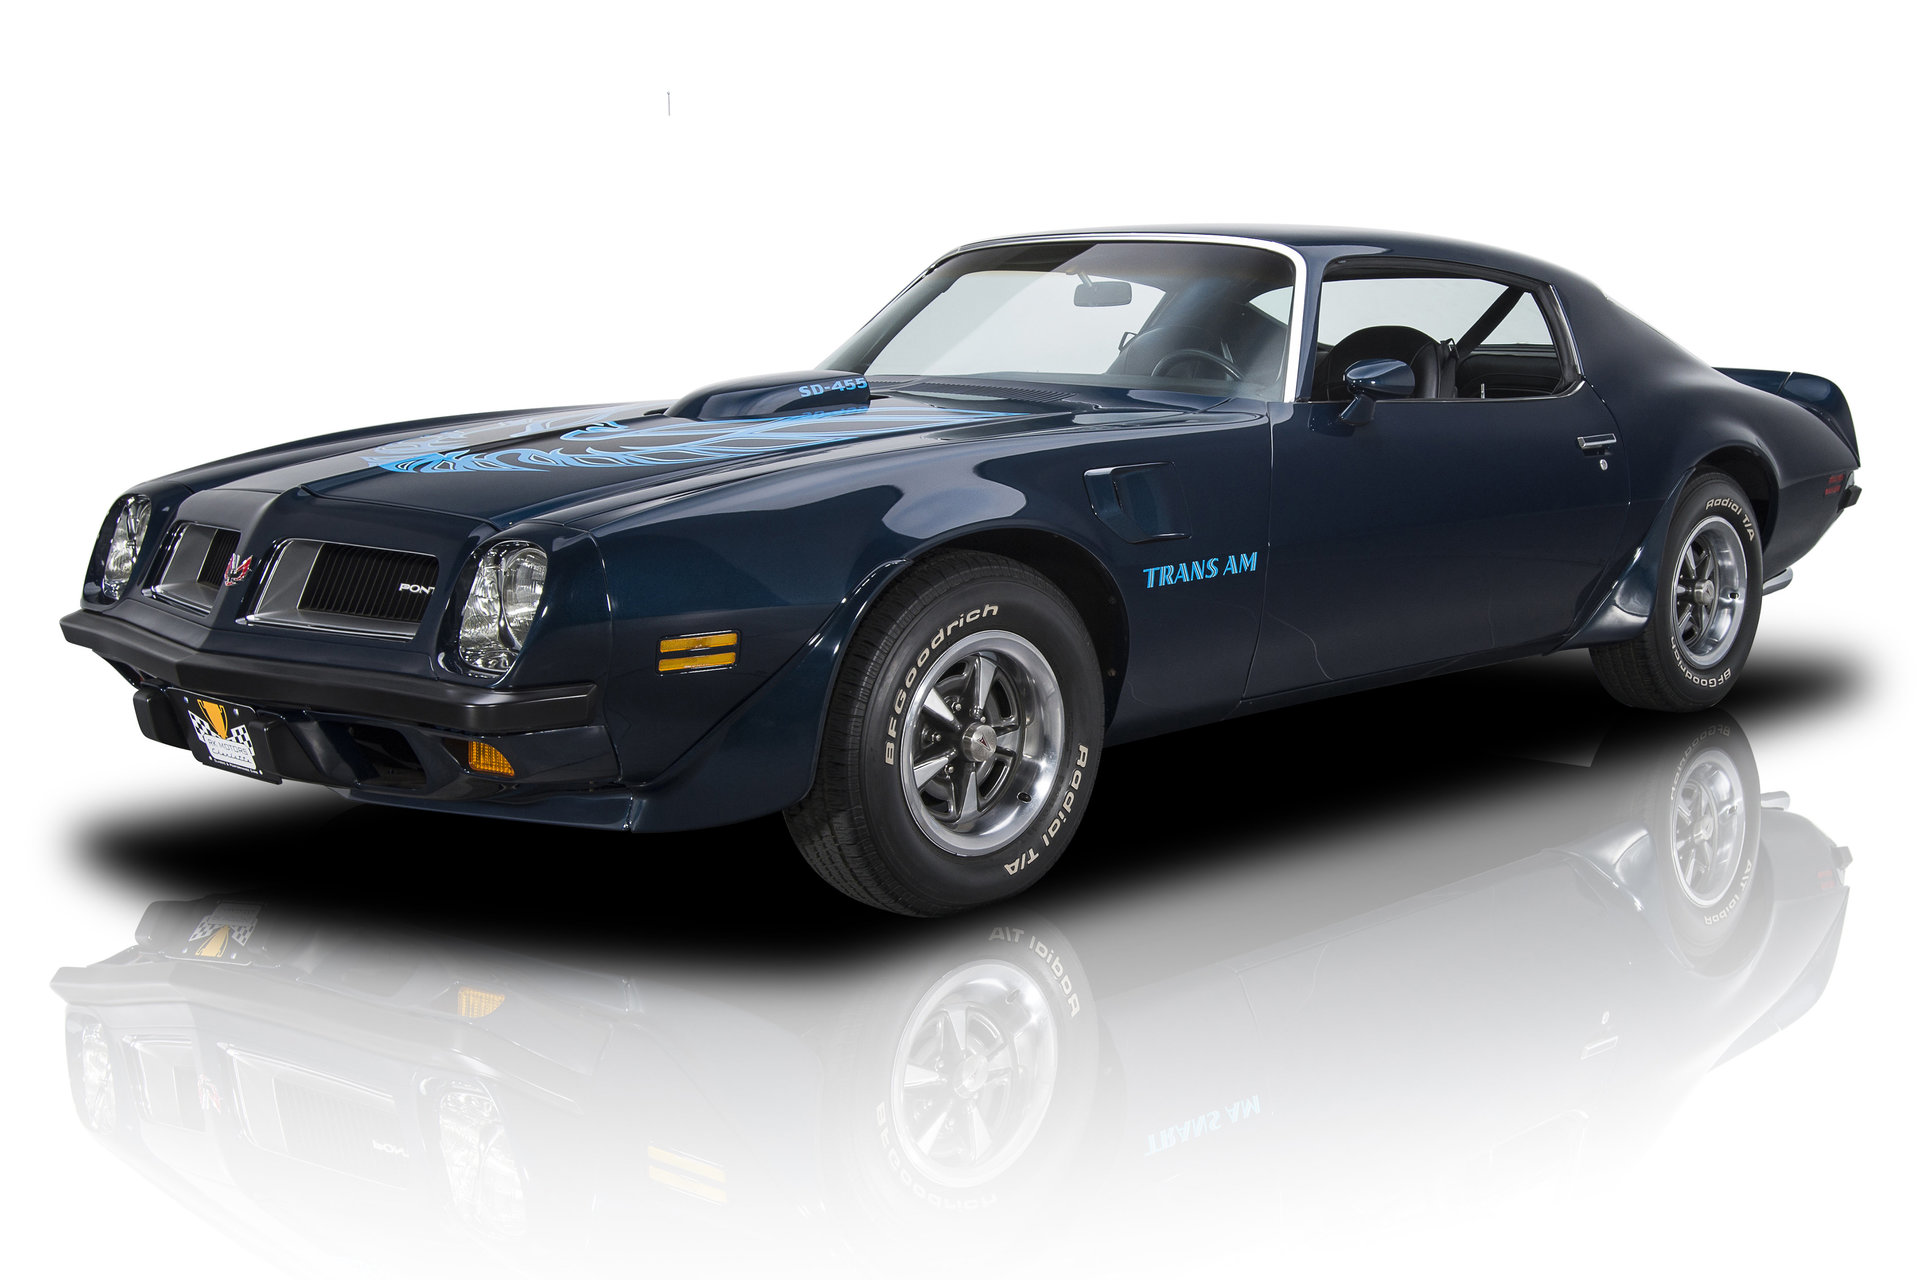 4001208ca04de3_hd_1974-pontiac-firebird-trans-am-super-duty